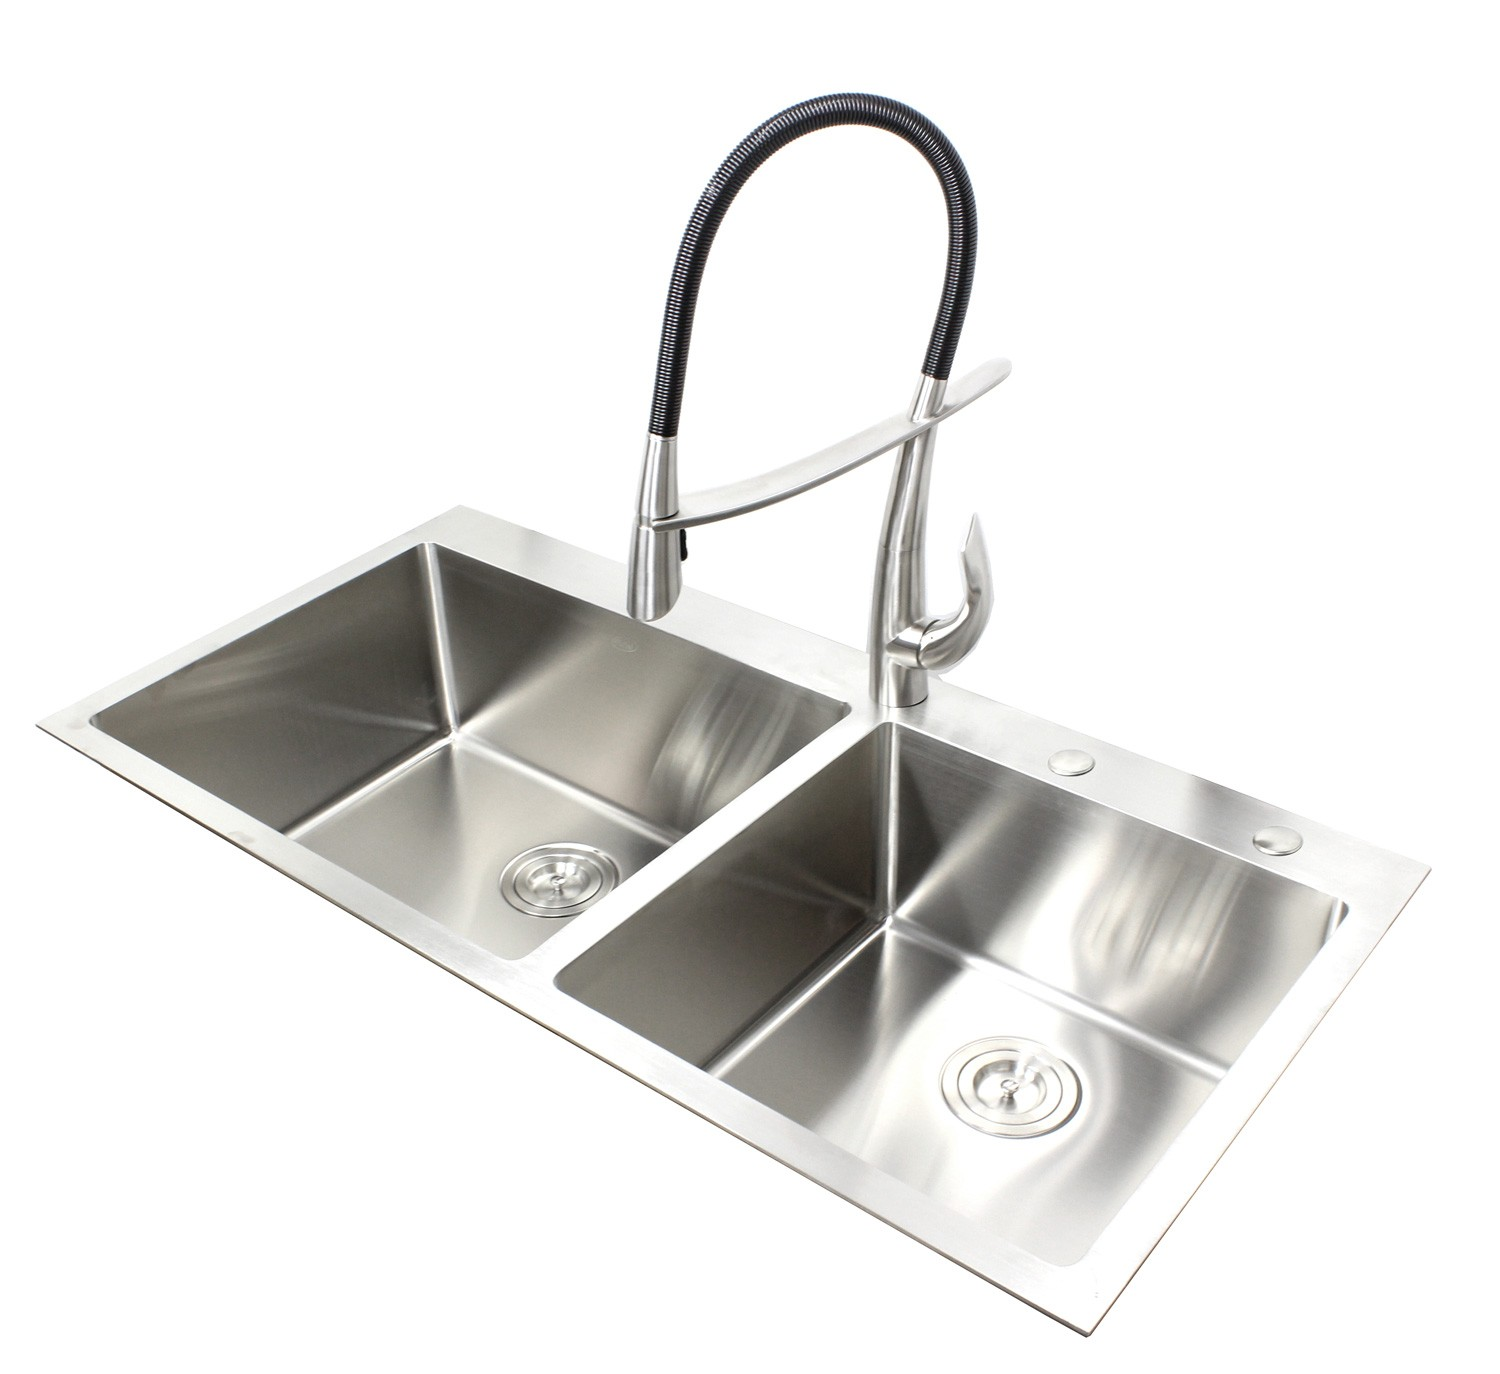 43 Inch Top Mount Drop In Stainless Steel Double Bowl Kitchen Sink 15mm Radius Design